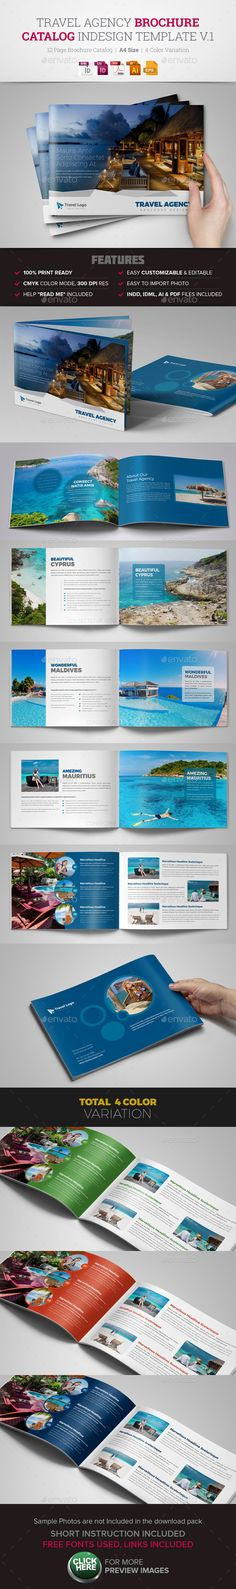 Showcase 40 Best Travel and Tourist Brochure Design Templates 2016 - sample travel brochure